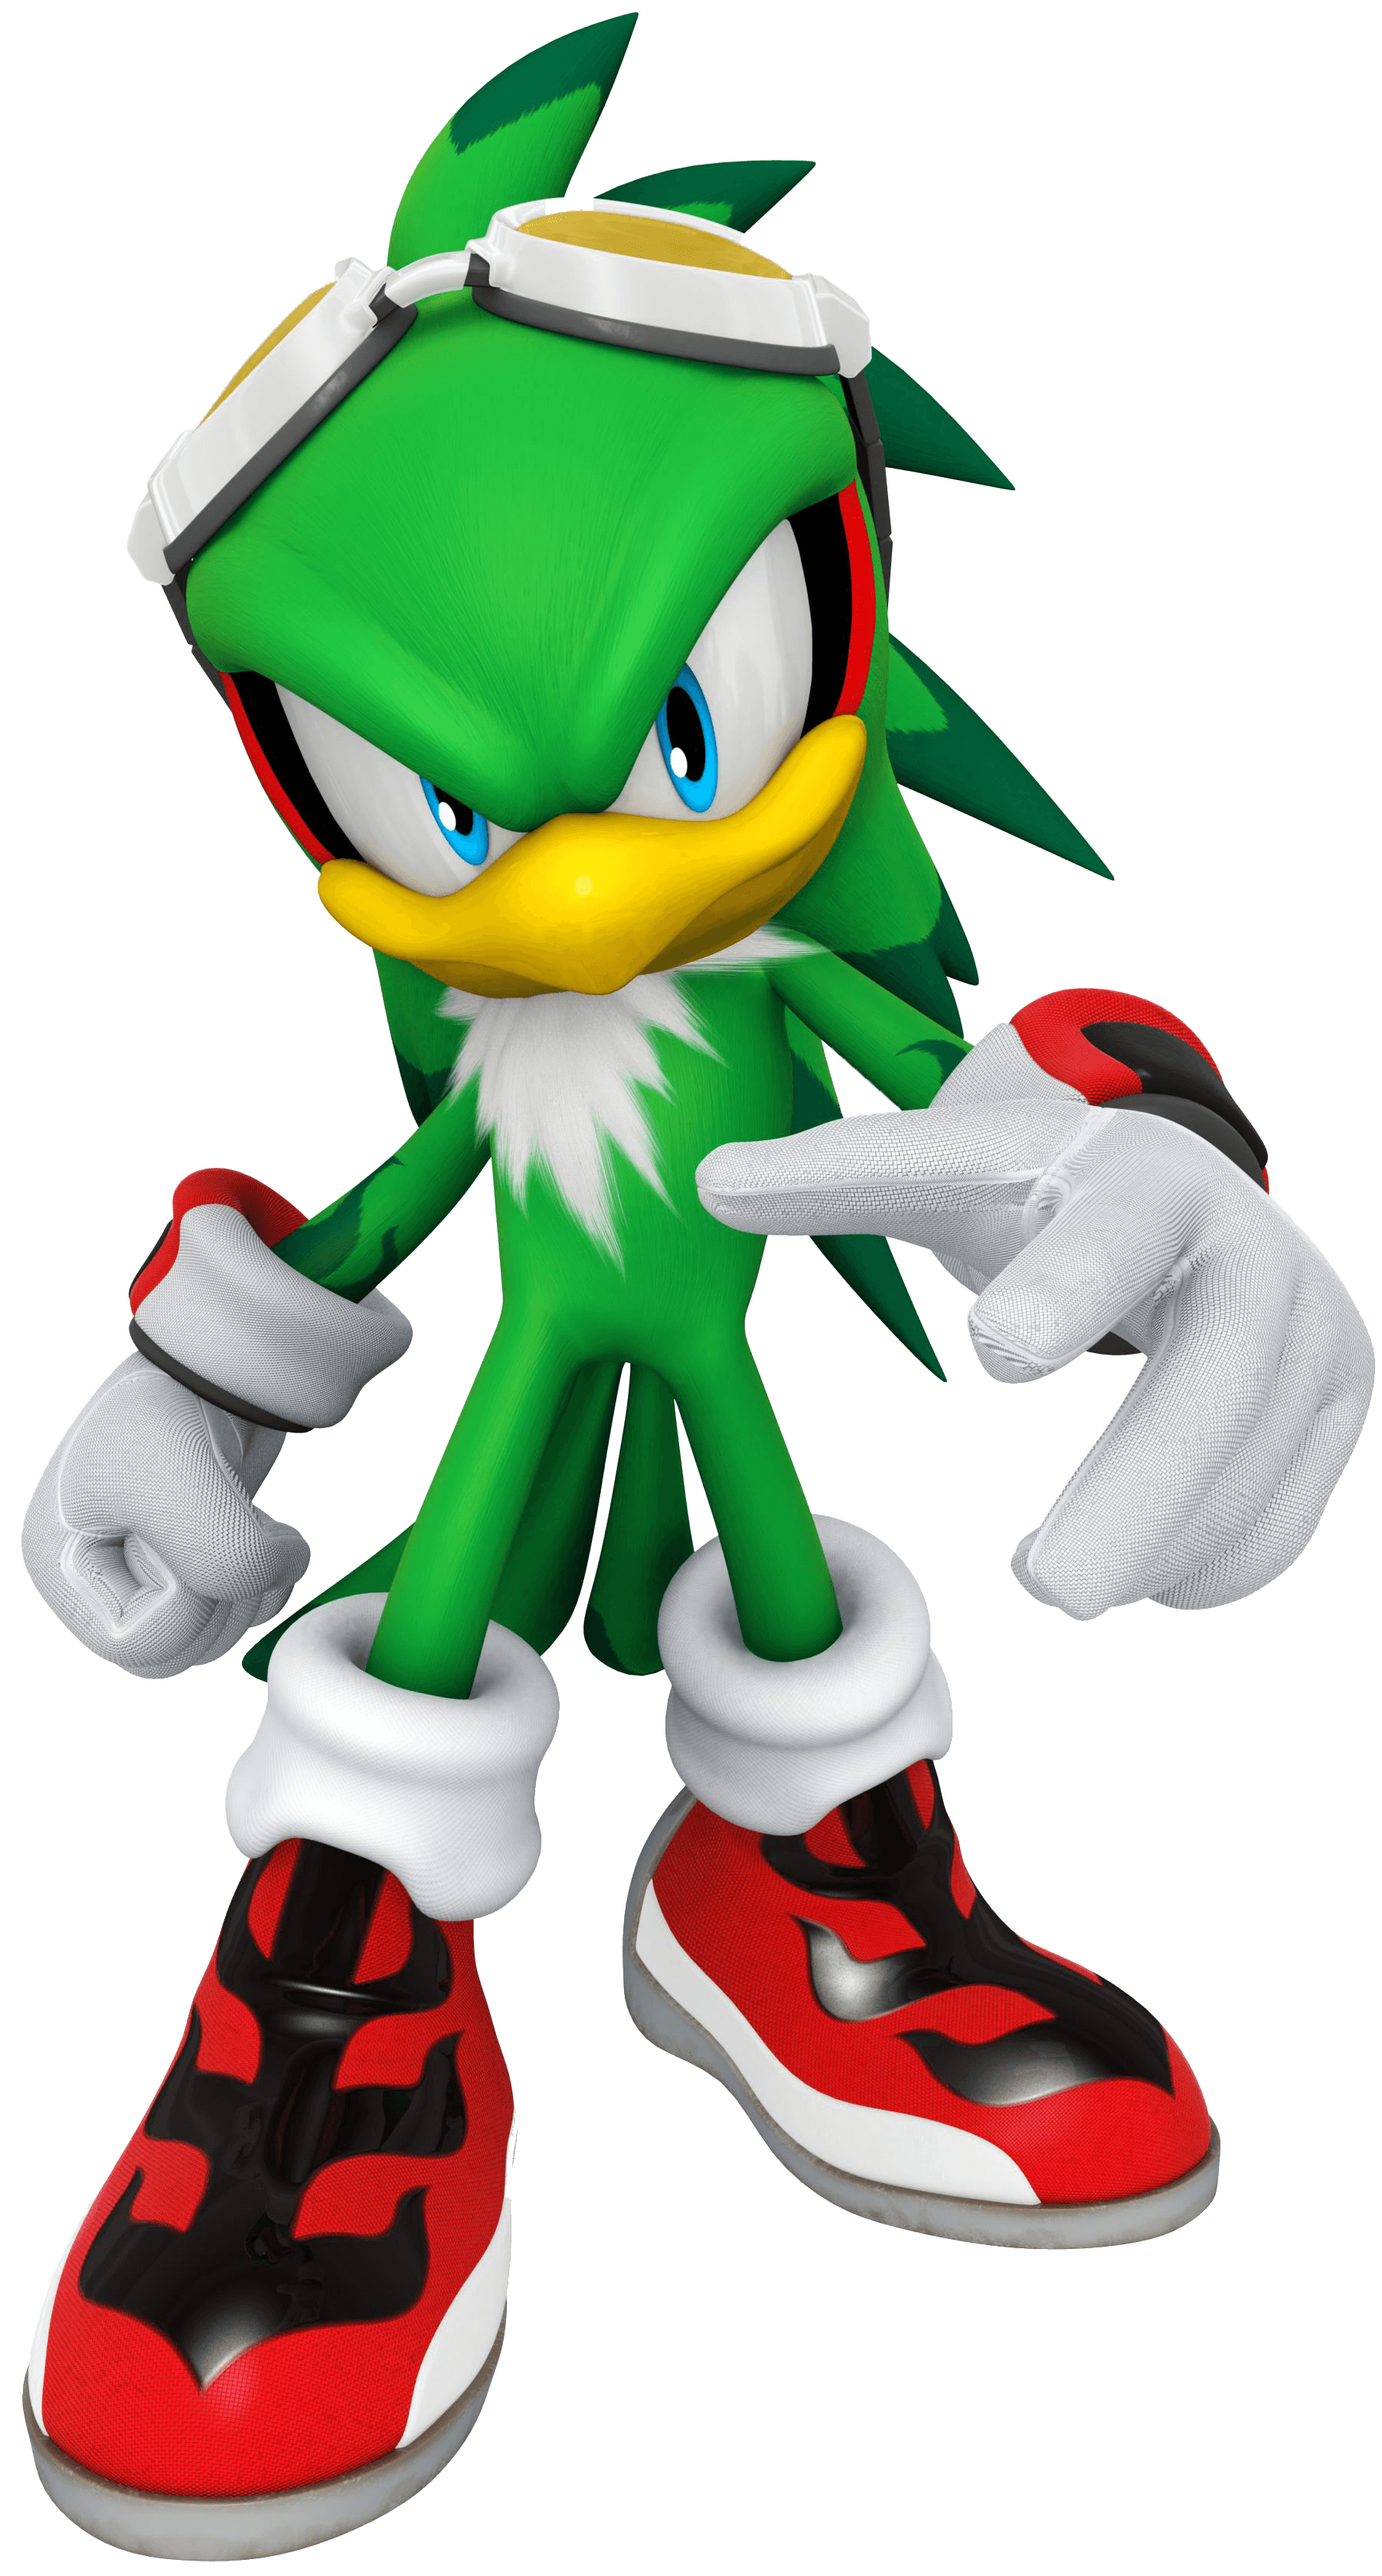 Jet The Hawk Villains Wiki Fandom Powered By Wikia